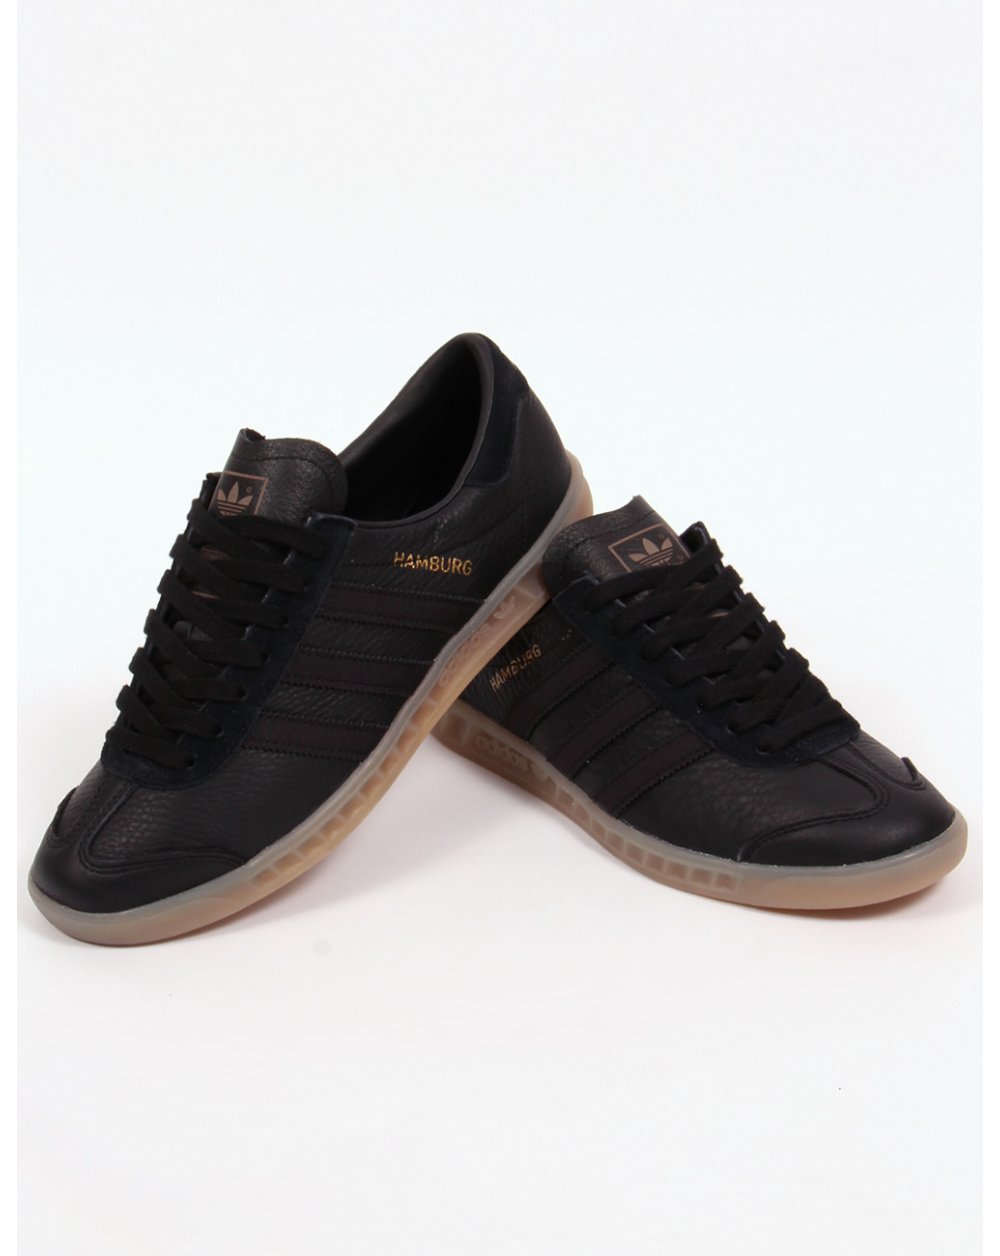 adidas mens hamburg trainers